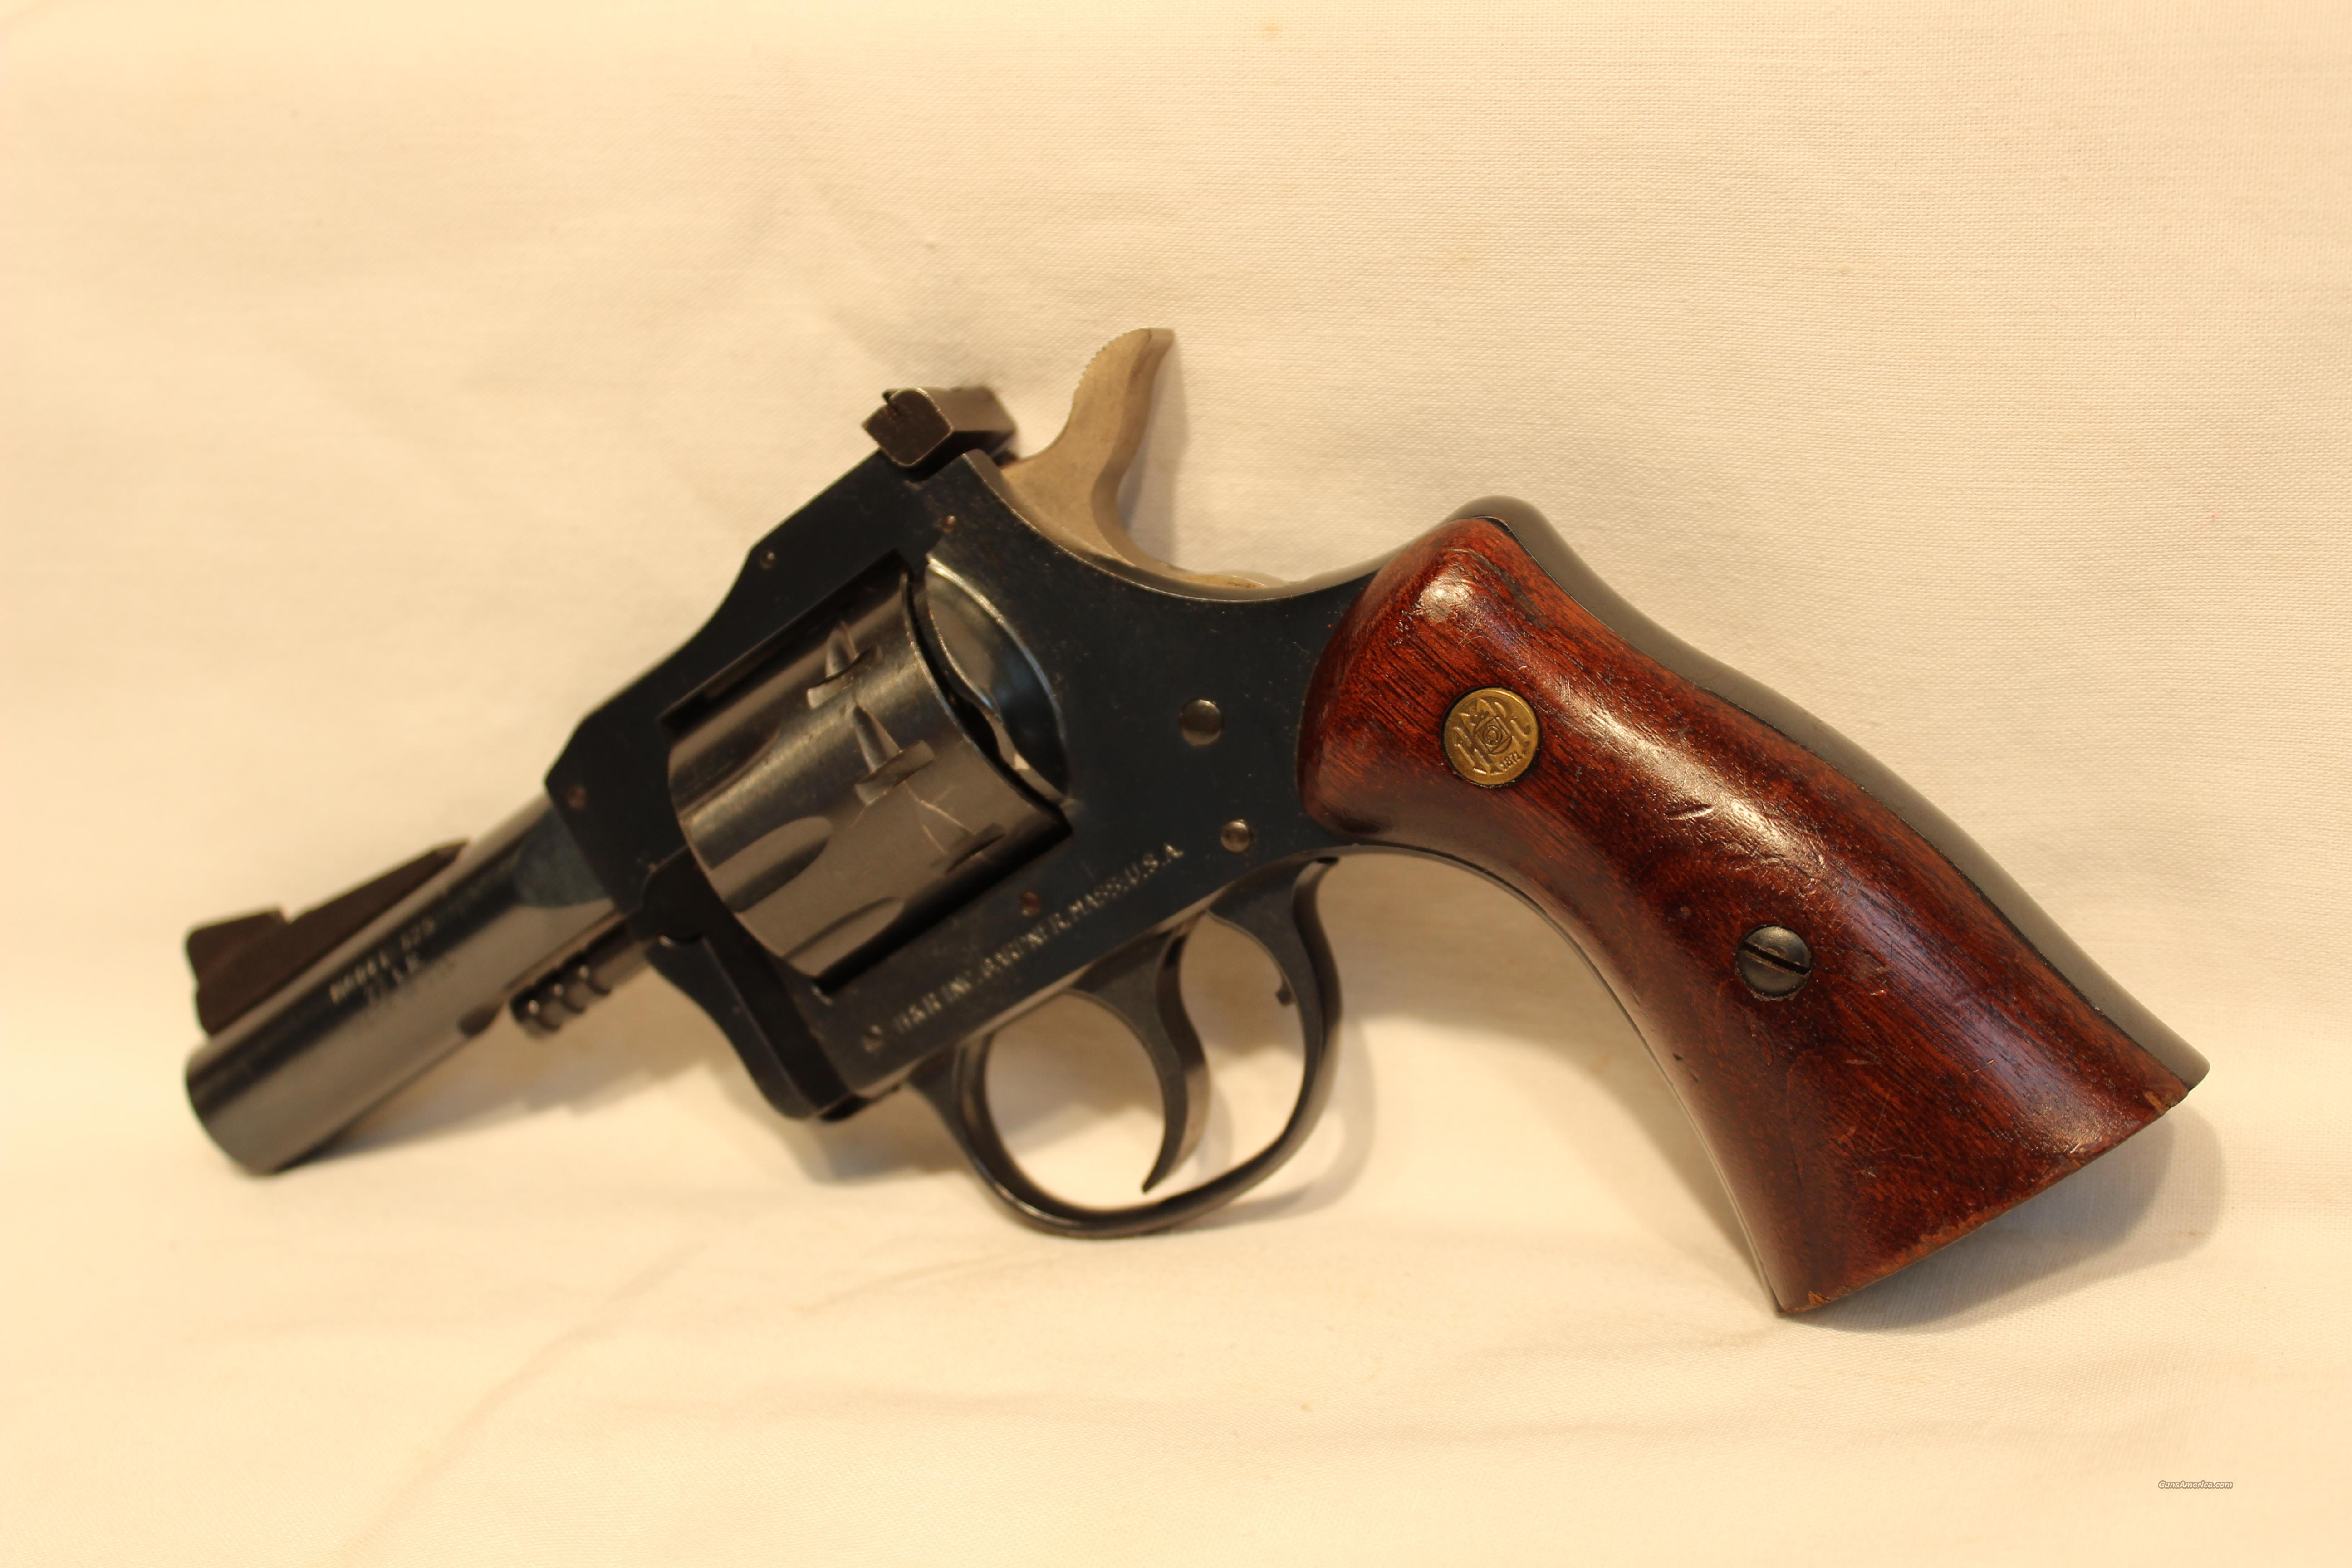 H&R 829 22LR rev  Guns > Pistols > Harrington & Richardson Pistols